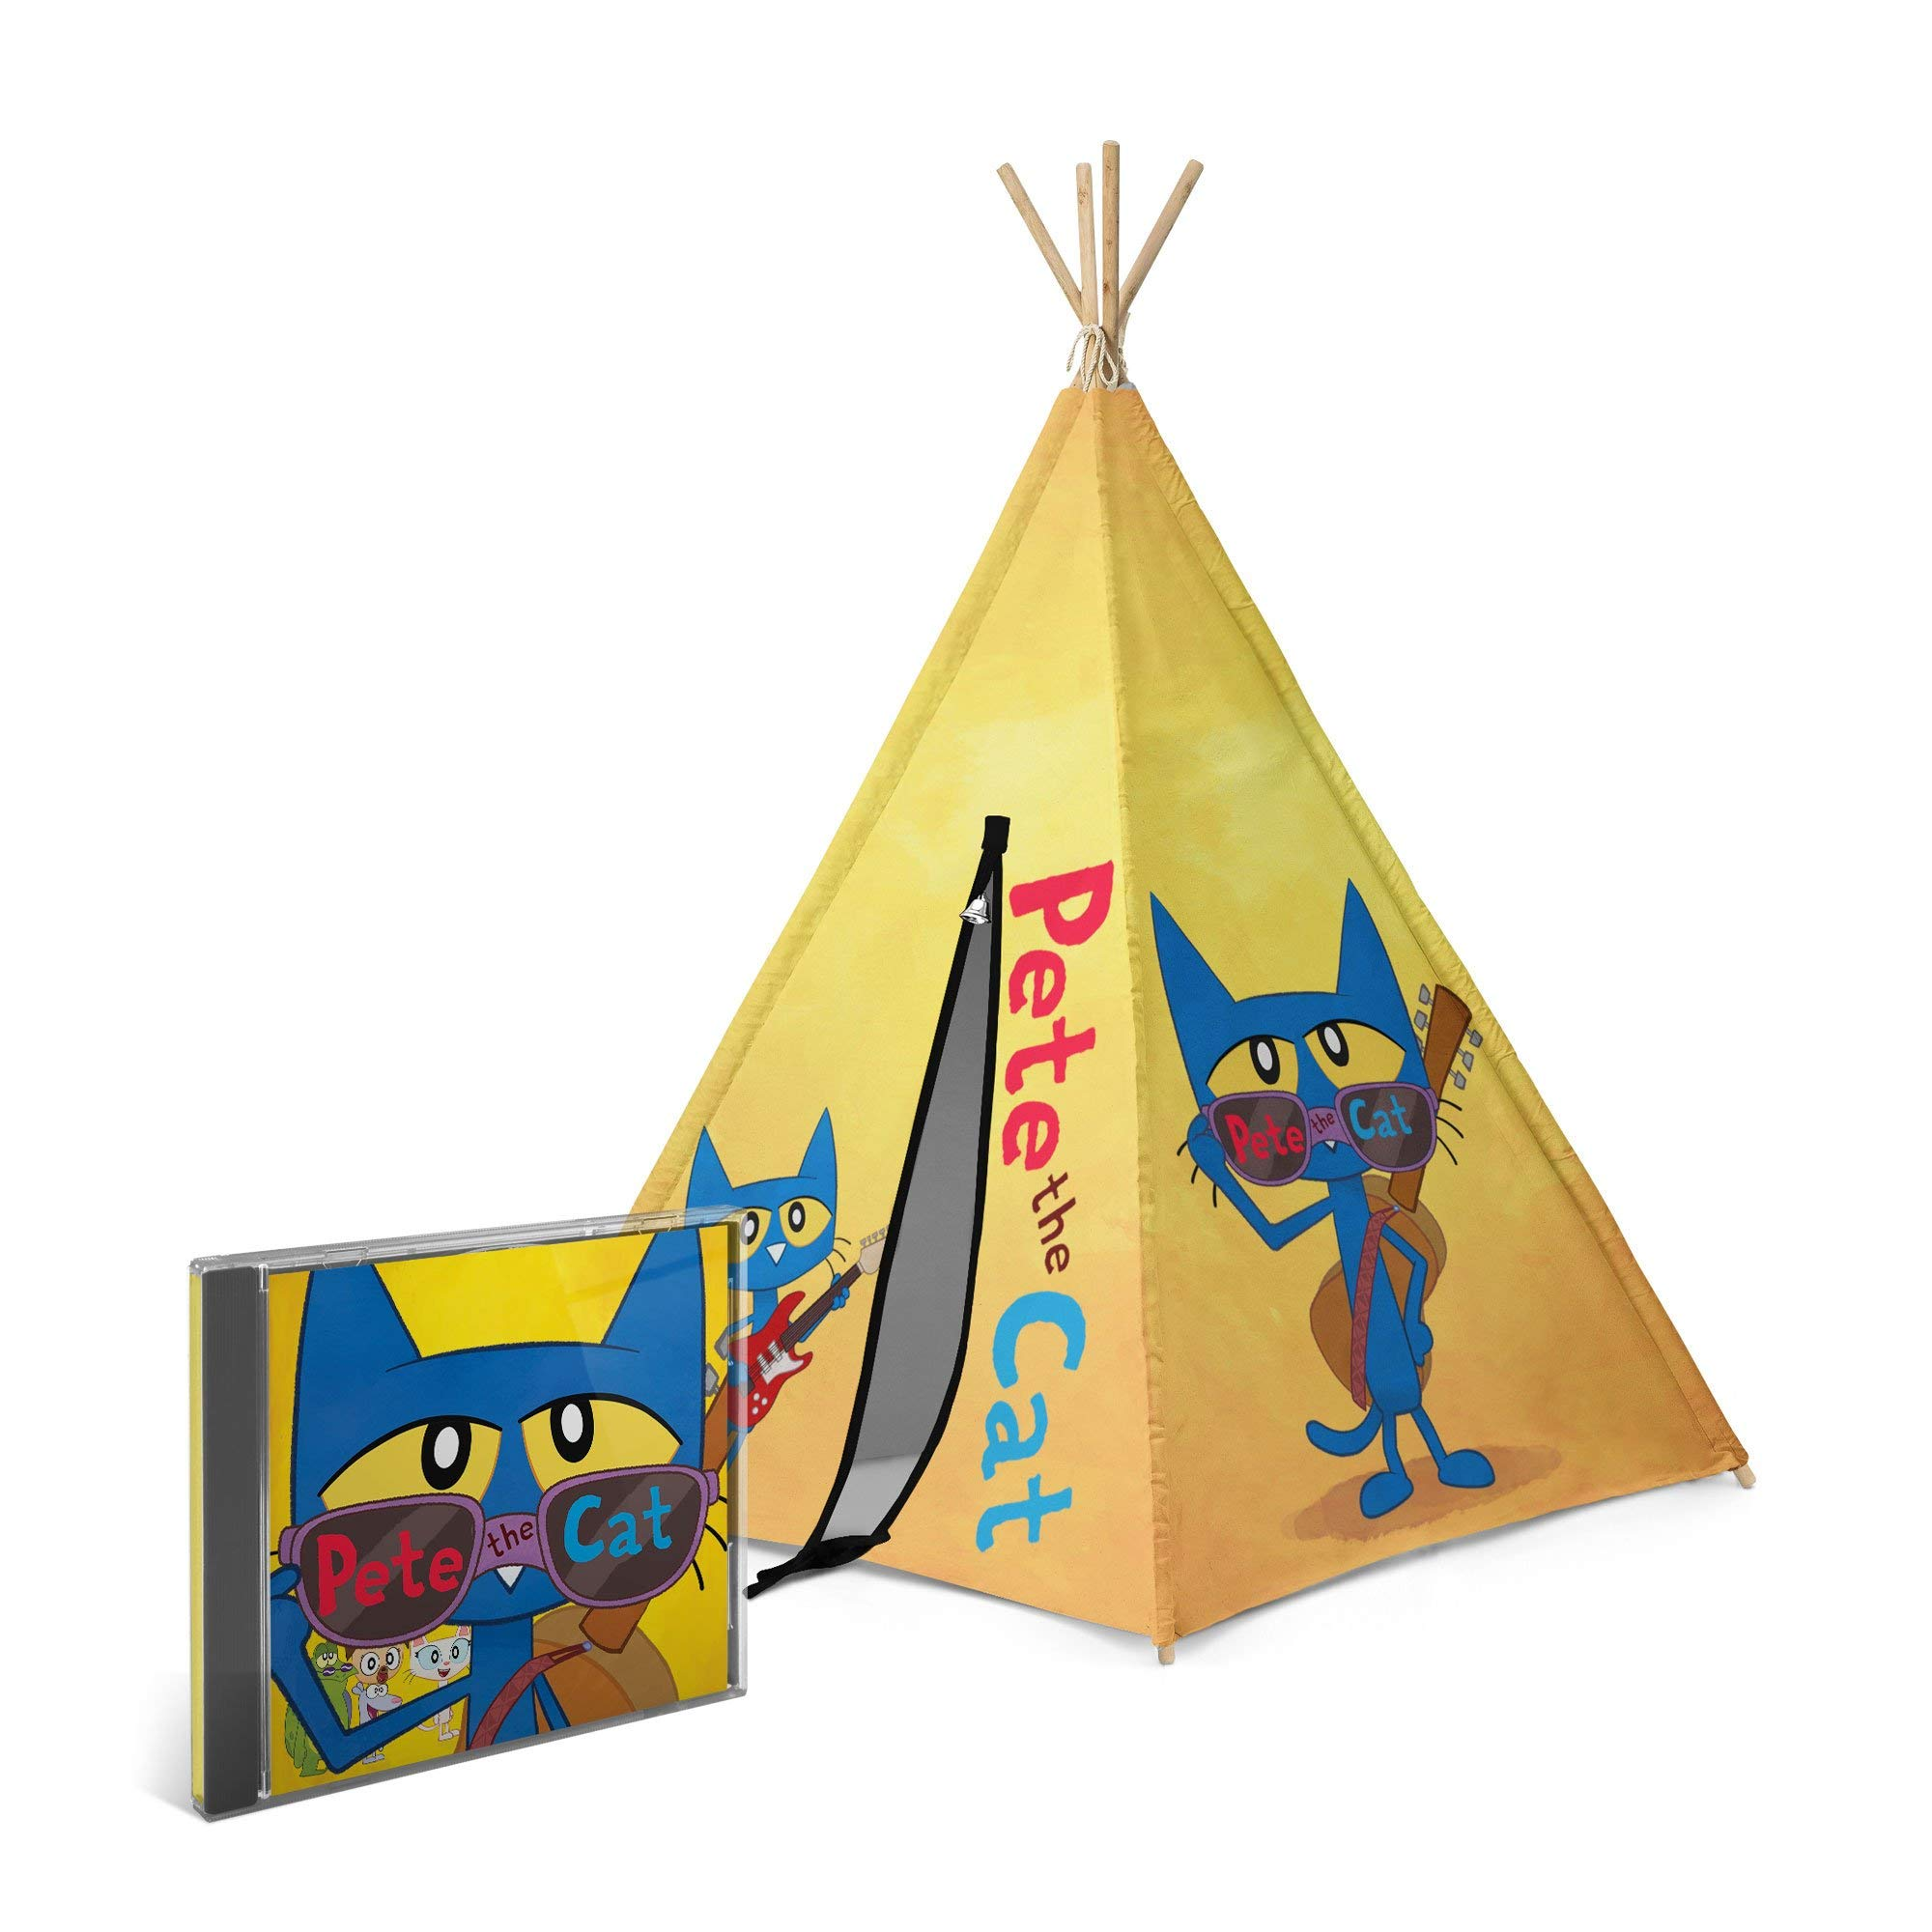 Pete the Cat CD + Teepee Bundle by Pete the Cat (Image #1)